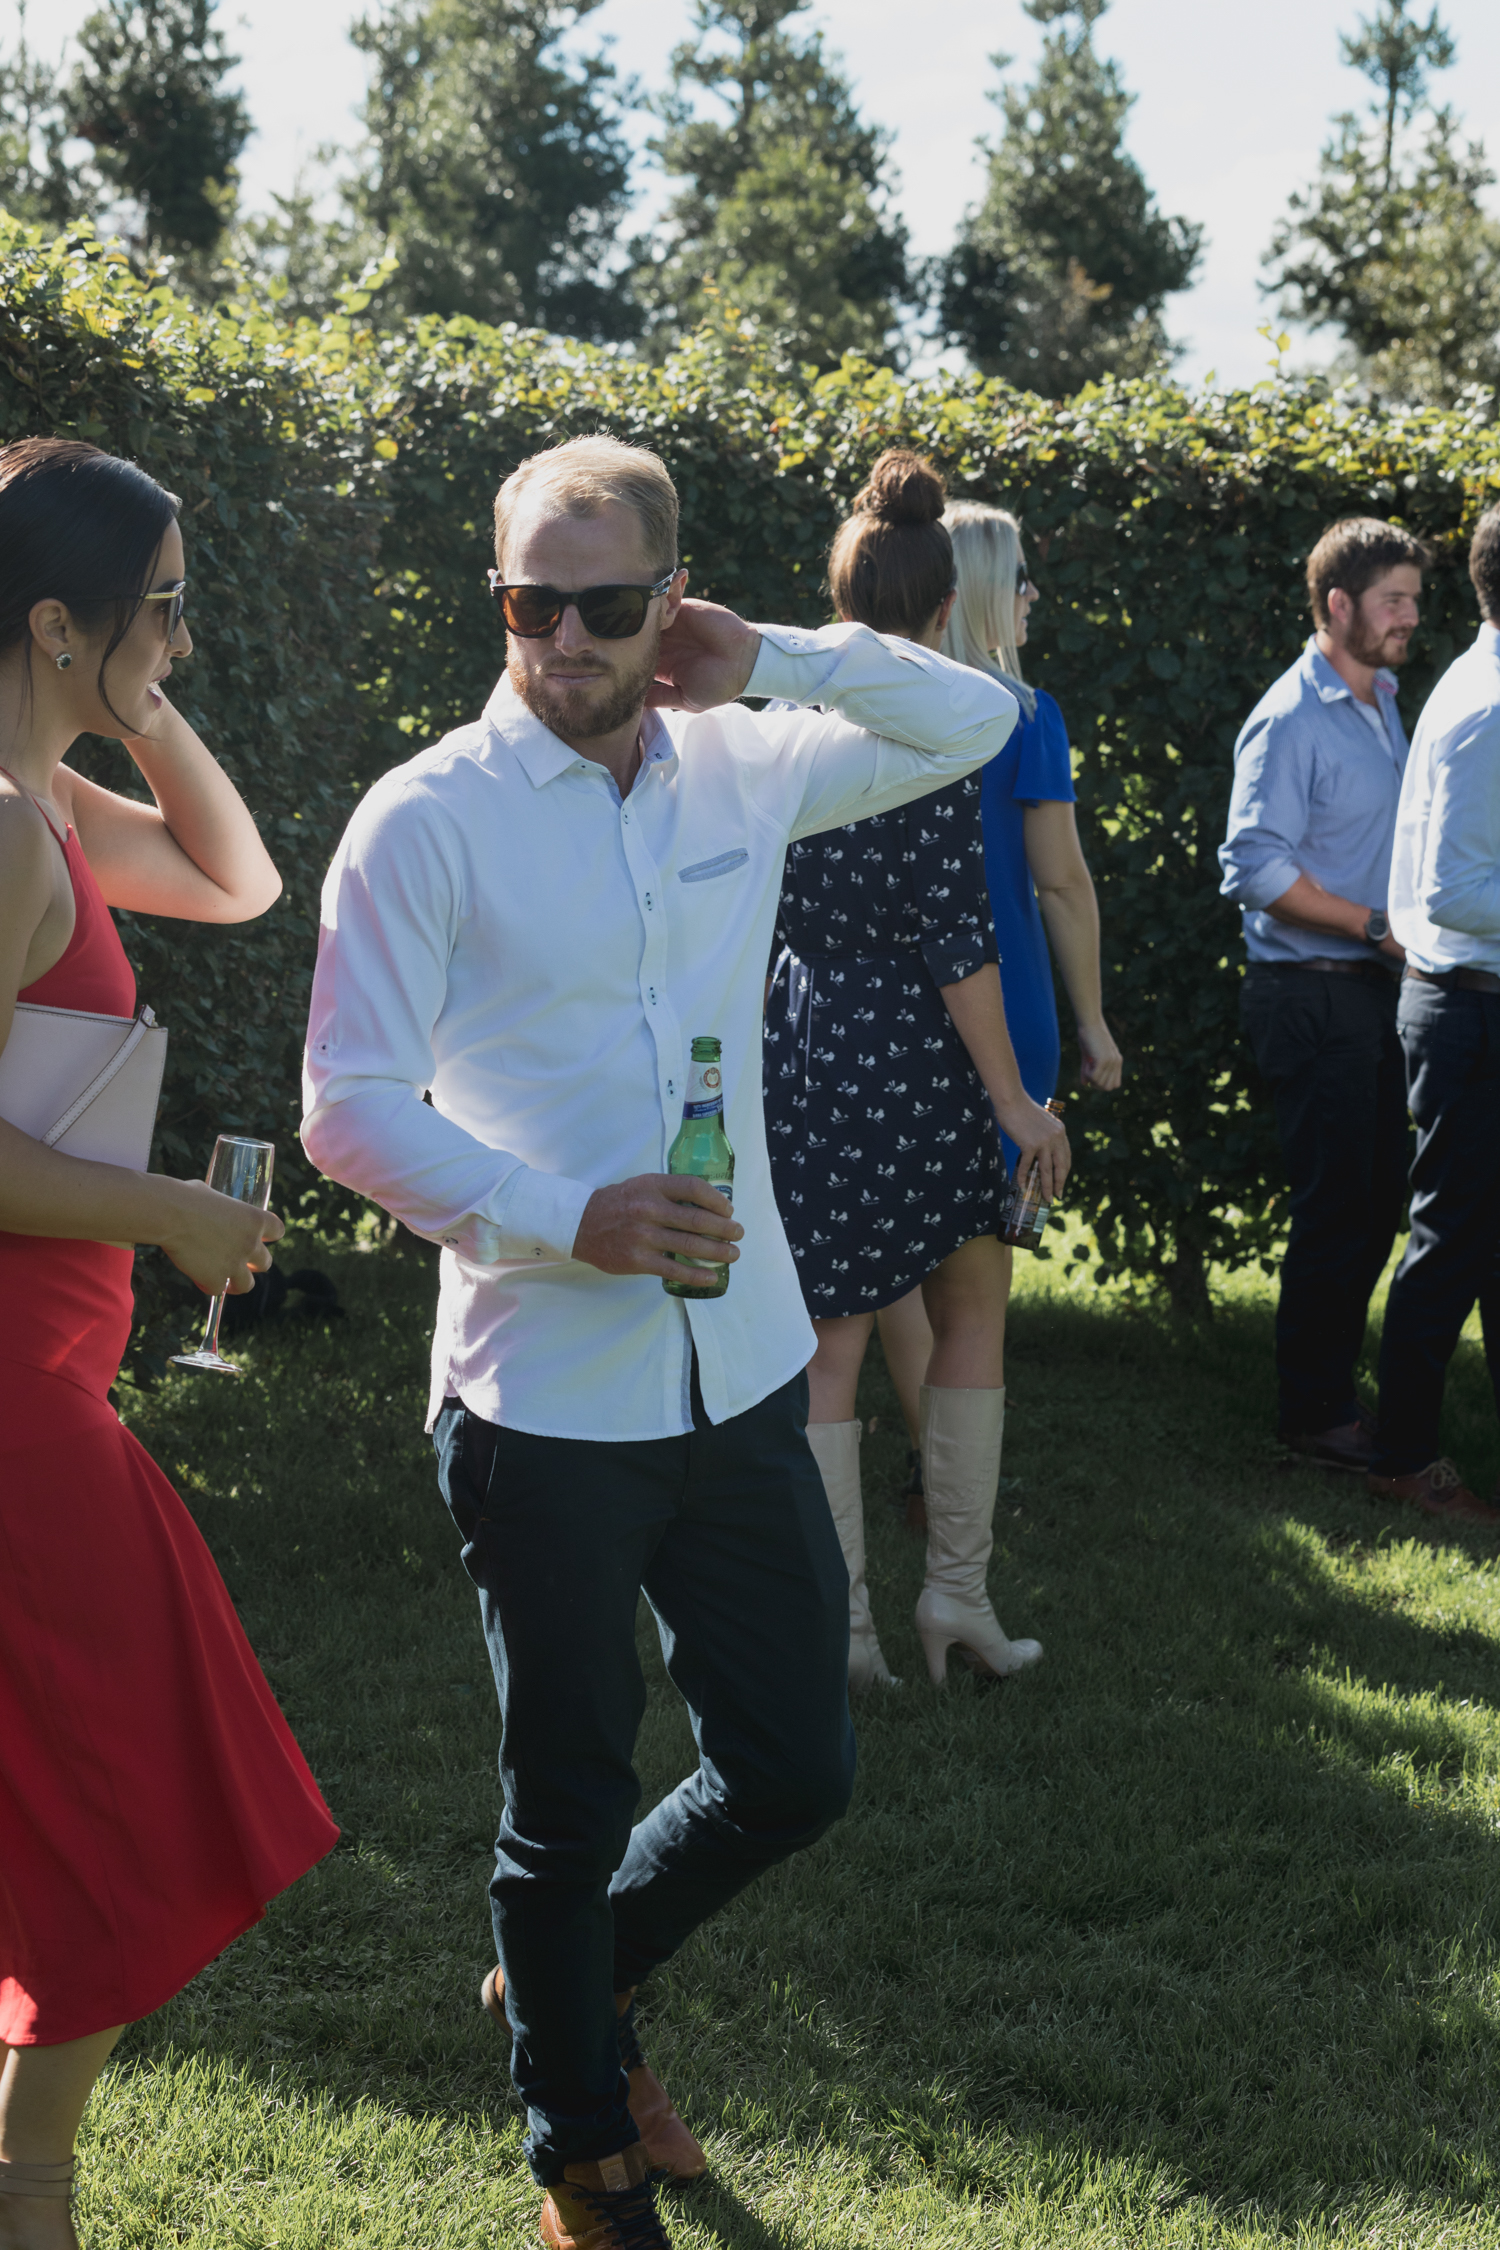 wedding-at-the-red-barn-new-zealand-wedding-photographer-guests-arriving-at-ceremony.jpg